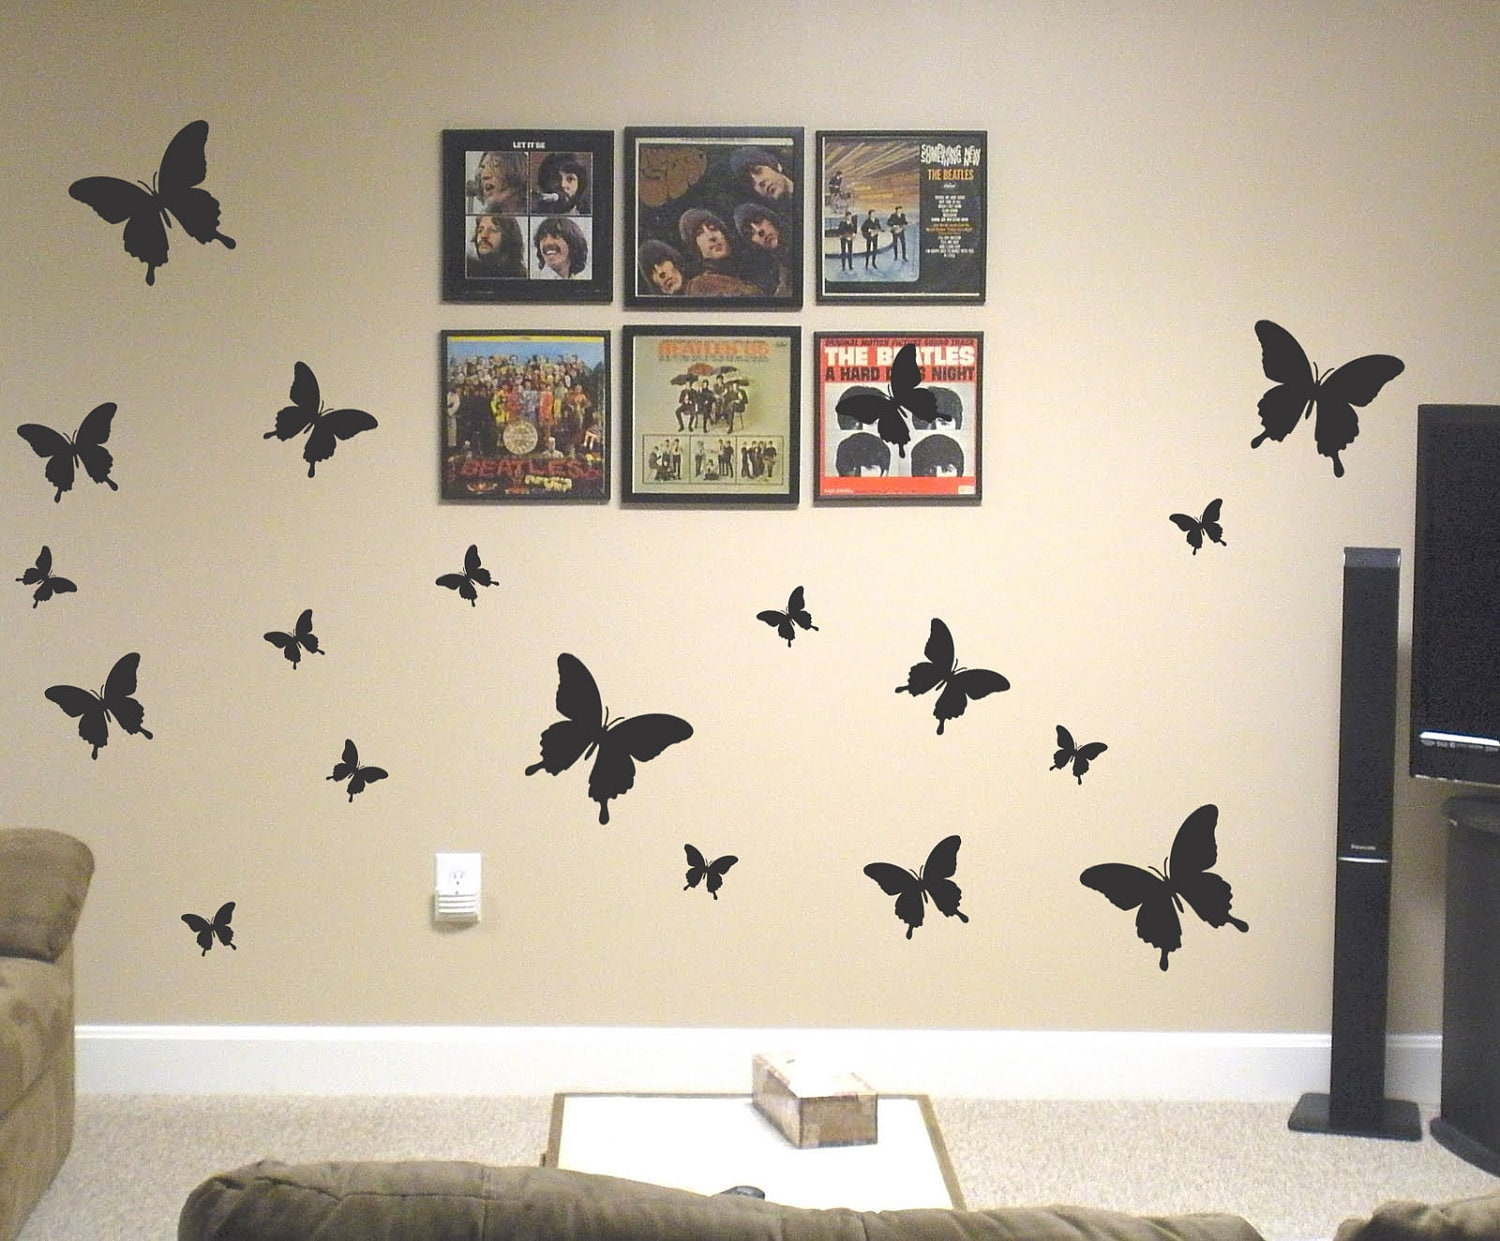 19 removable butterflies vinyl wall art decals bedroom for Bedroom wall art